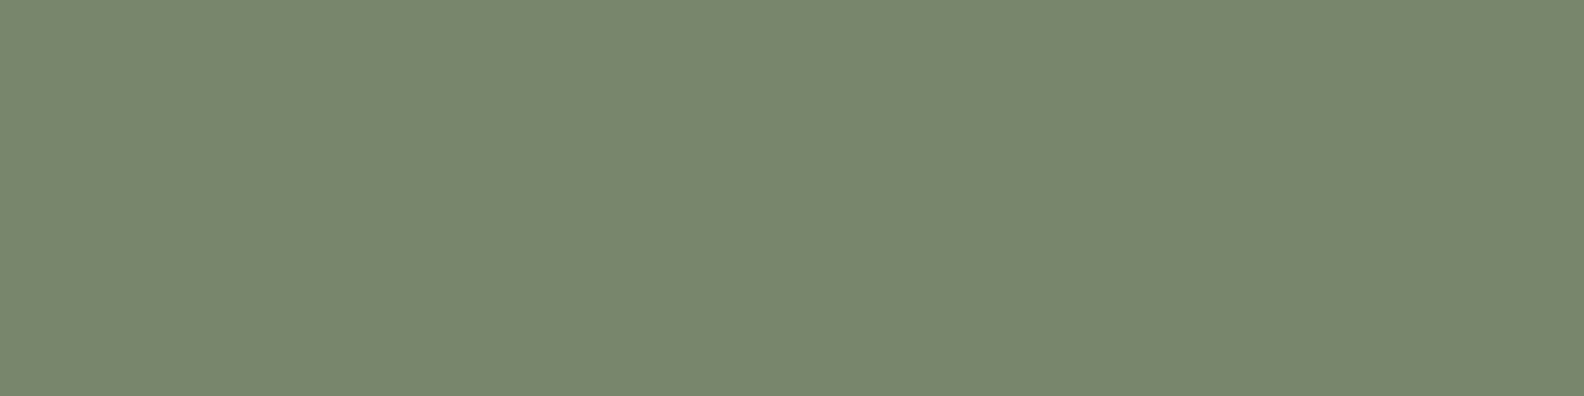 1584x396 Camouflage Green Solid Color Background